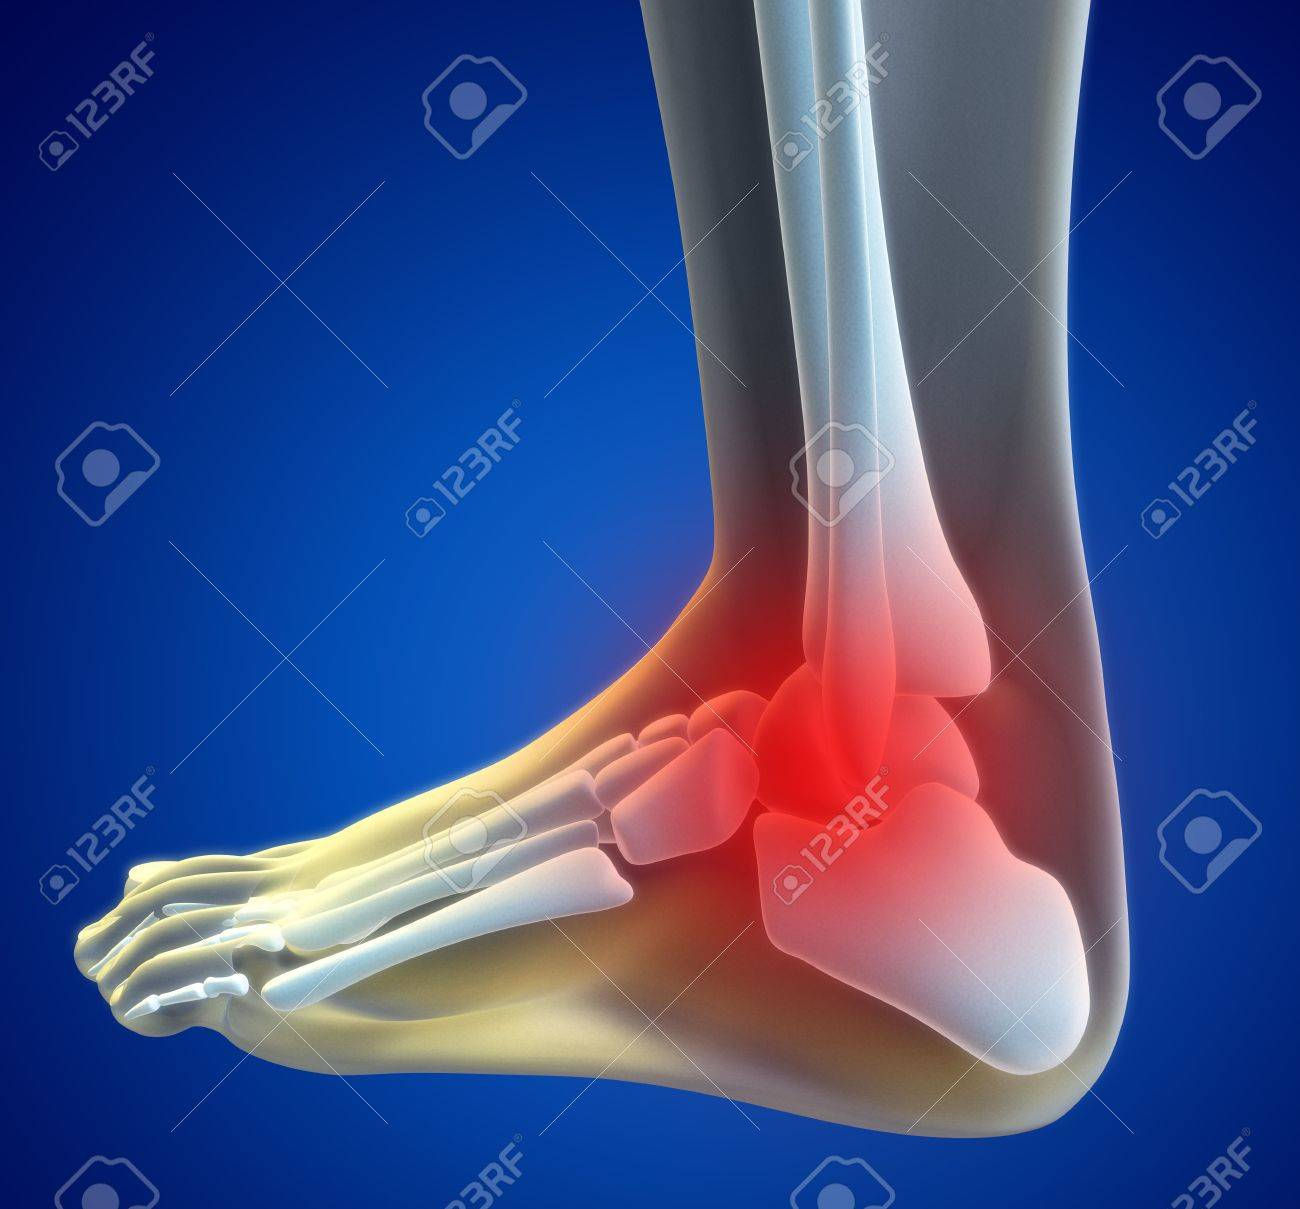 An illustration of a foot xray with a red spot showing the injured ankle. Stock Illustration - 7038012